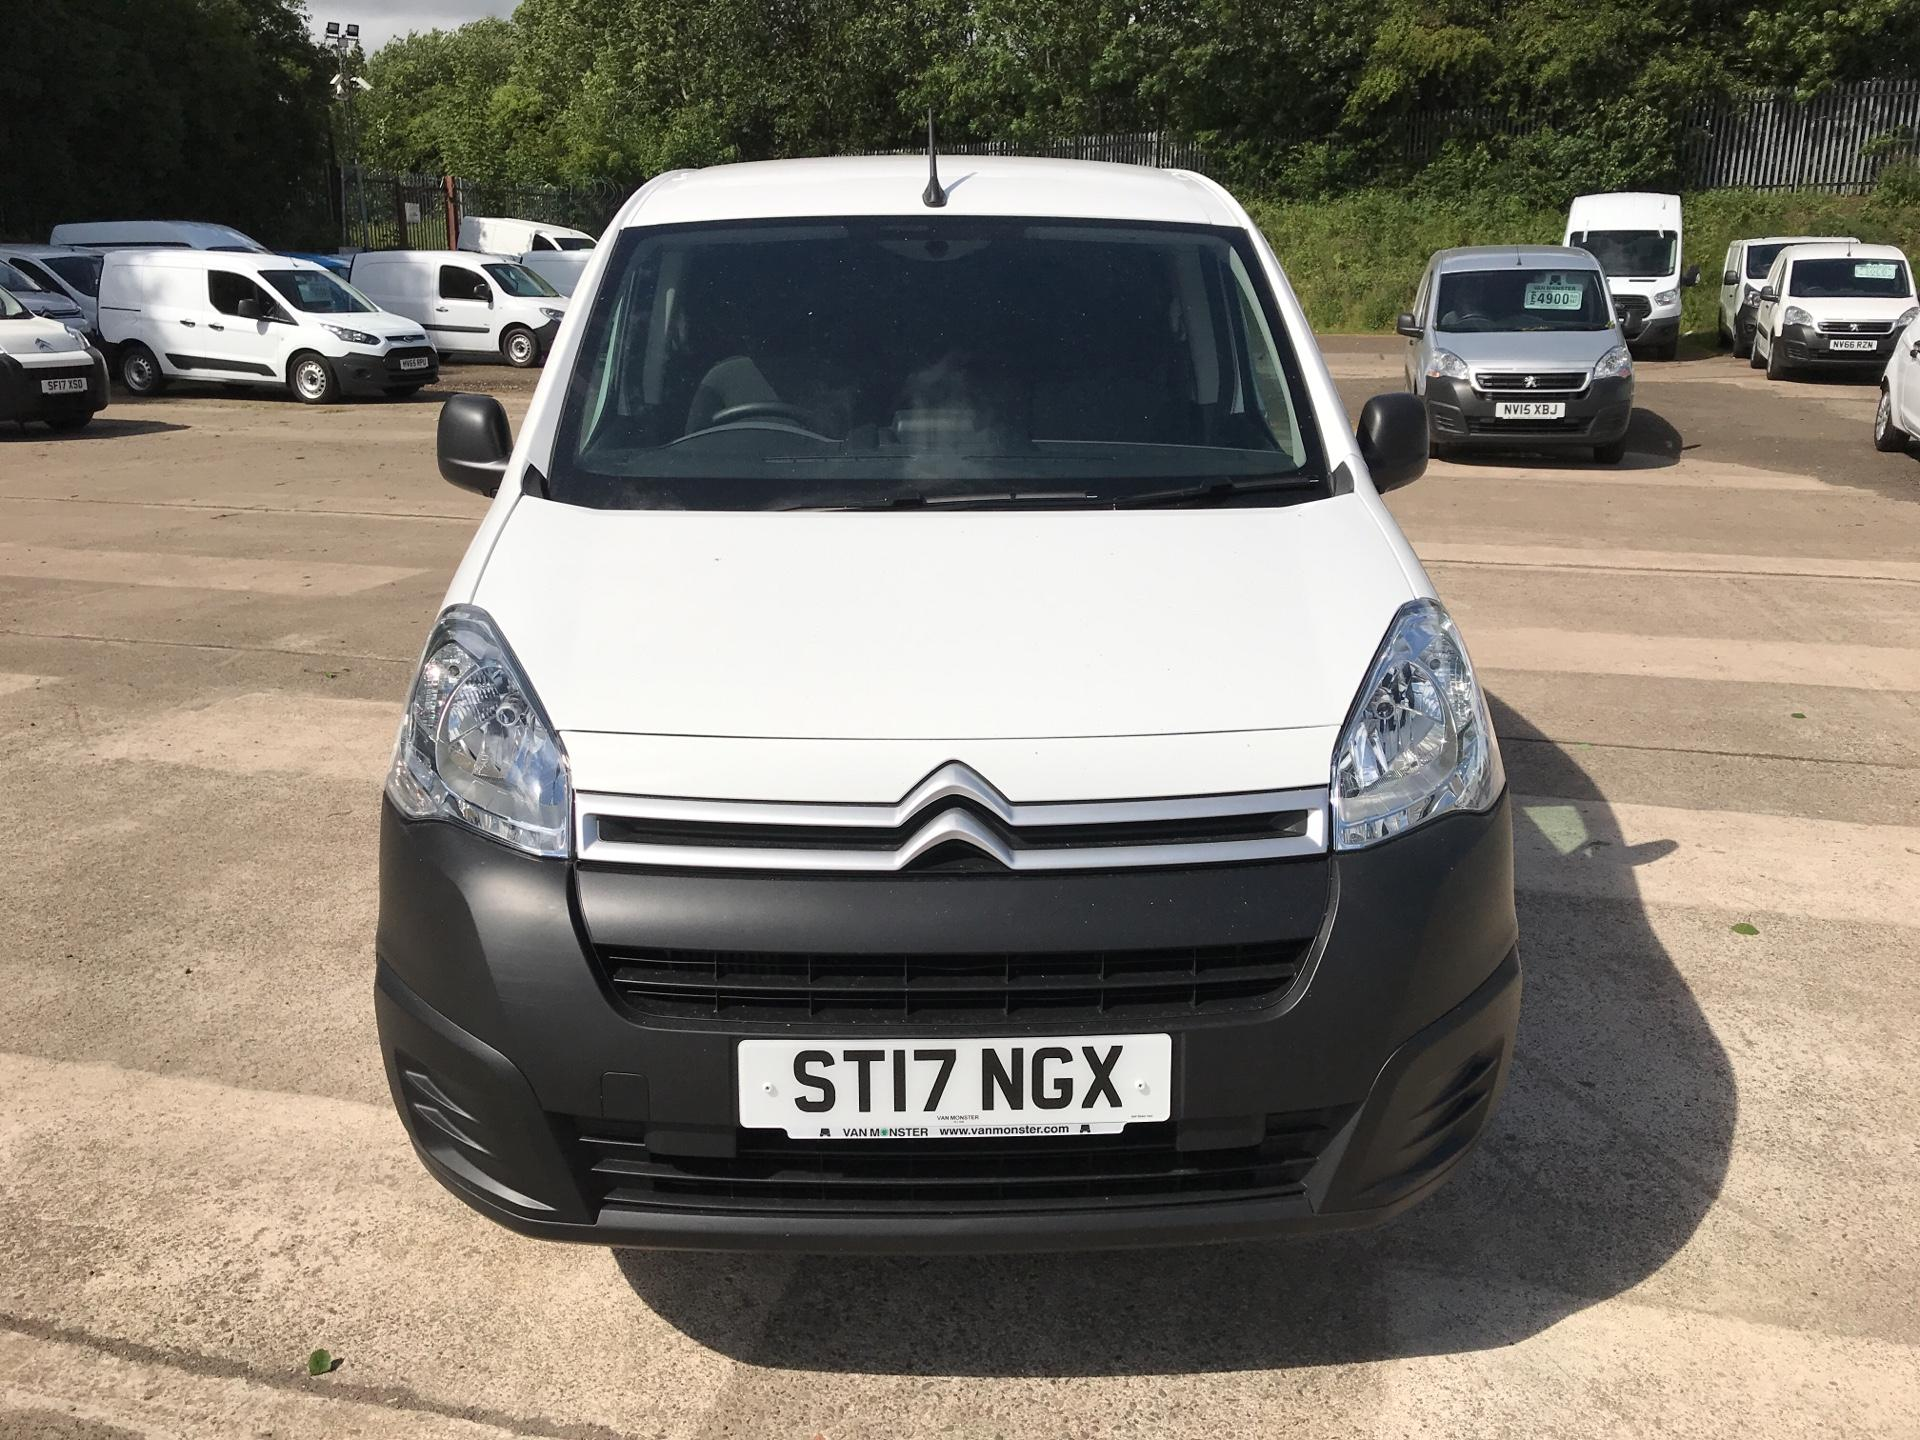 2017 Citroen Berlingo L1 DIESEL 1.6 HDI 625KG ENTERPRISE 75PS EURO 4/5 (ST17NGX) Image 8